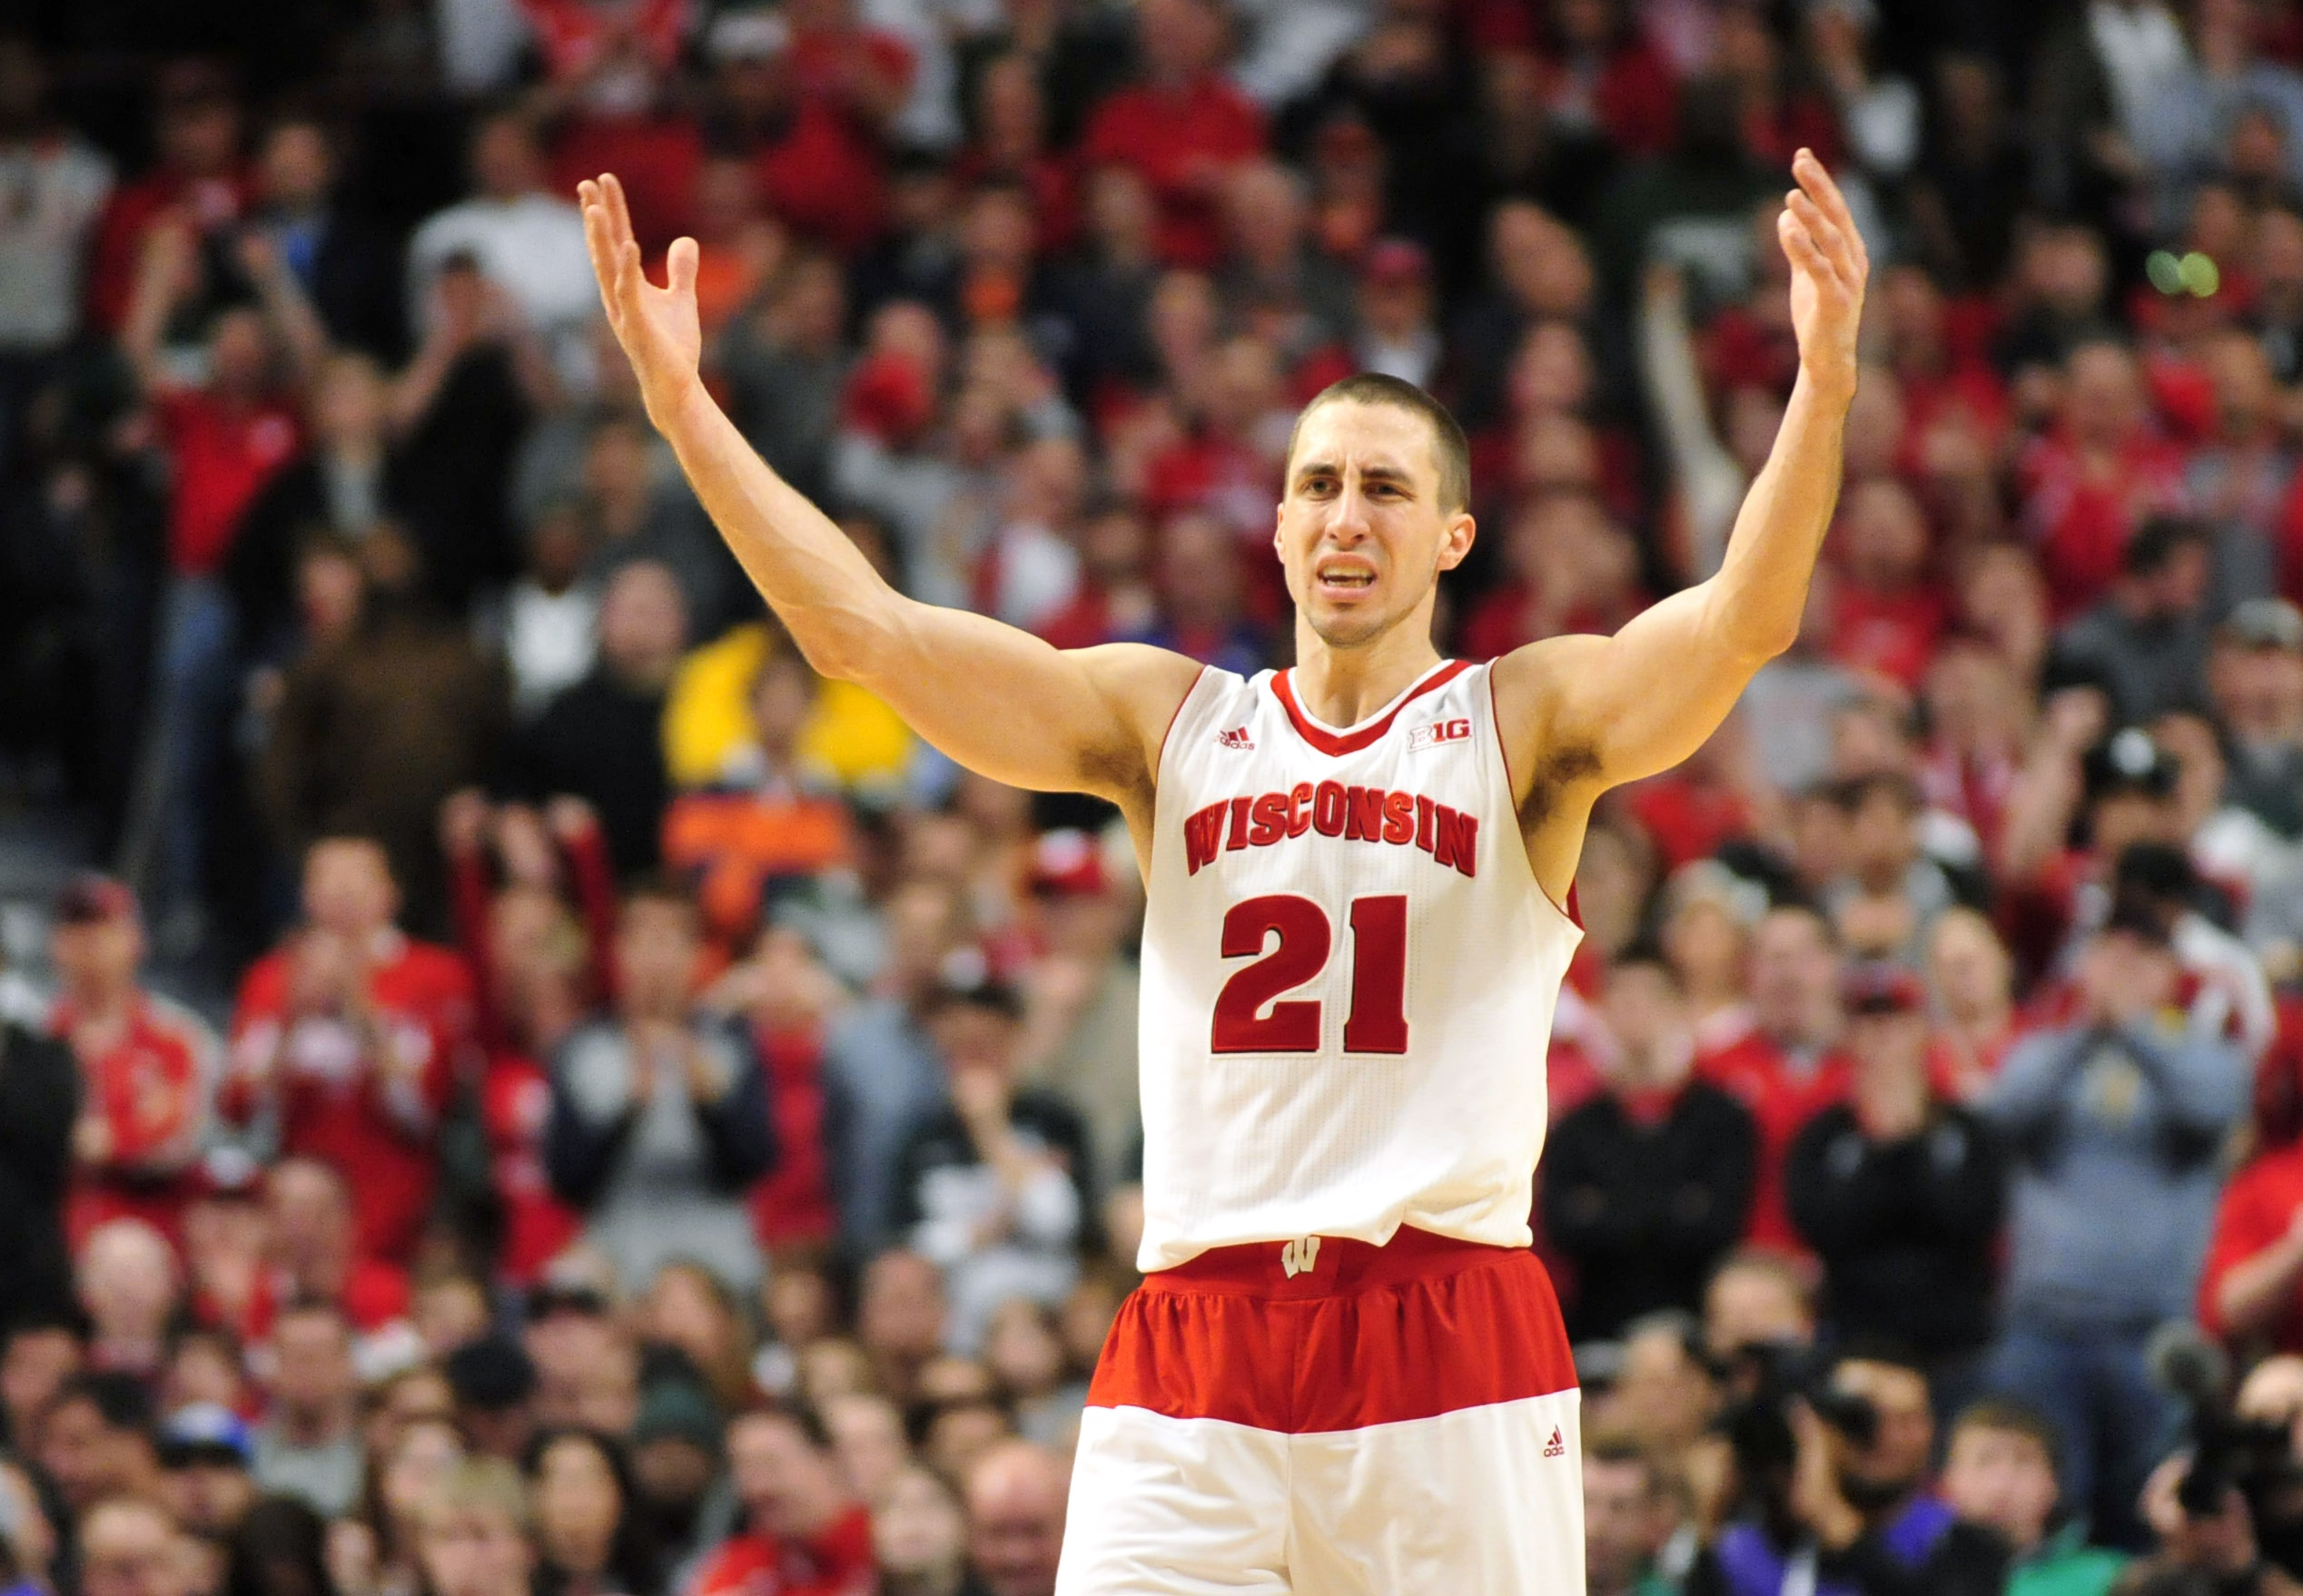 Wisconsin Badgers guard Josh Gasser reacts during overtime in the championship game of the Big Ten tournament against the Michigan State Spartans at the United Center. Photo credit: David Banks / USA Today Sports.